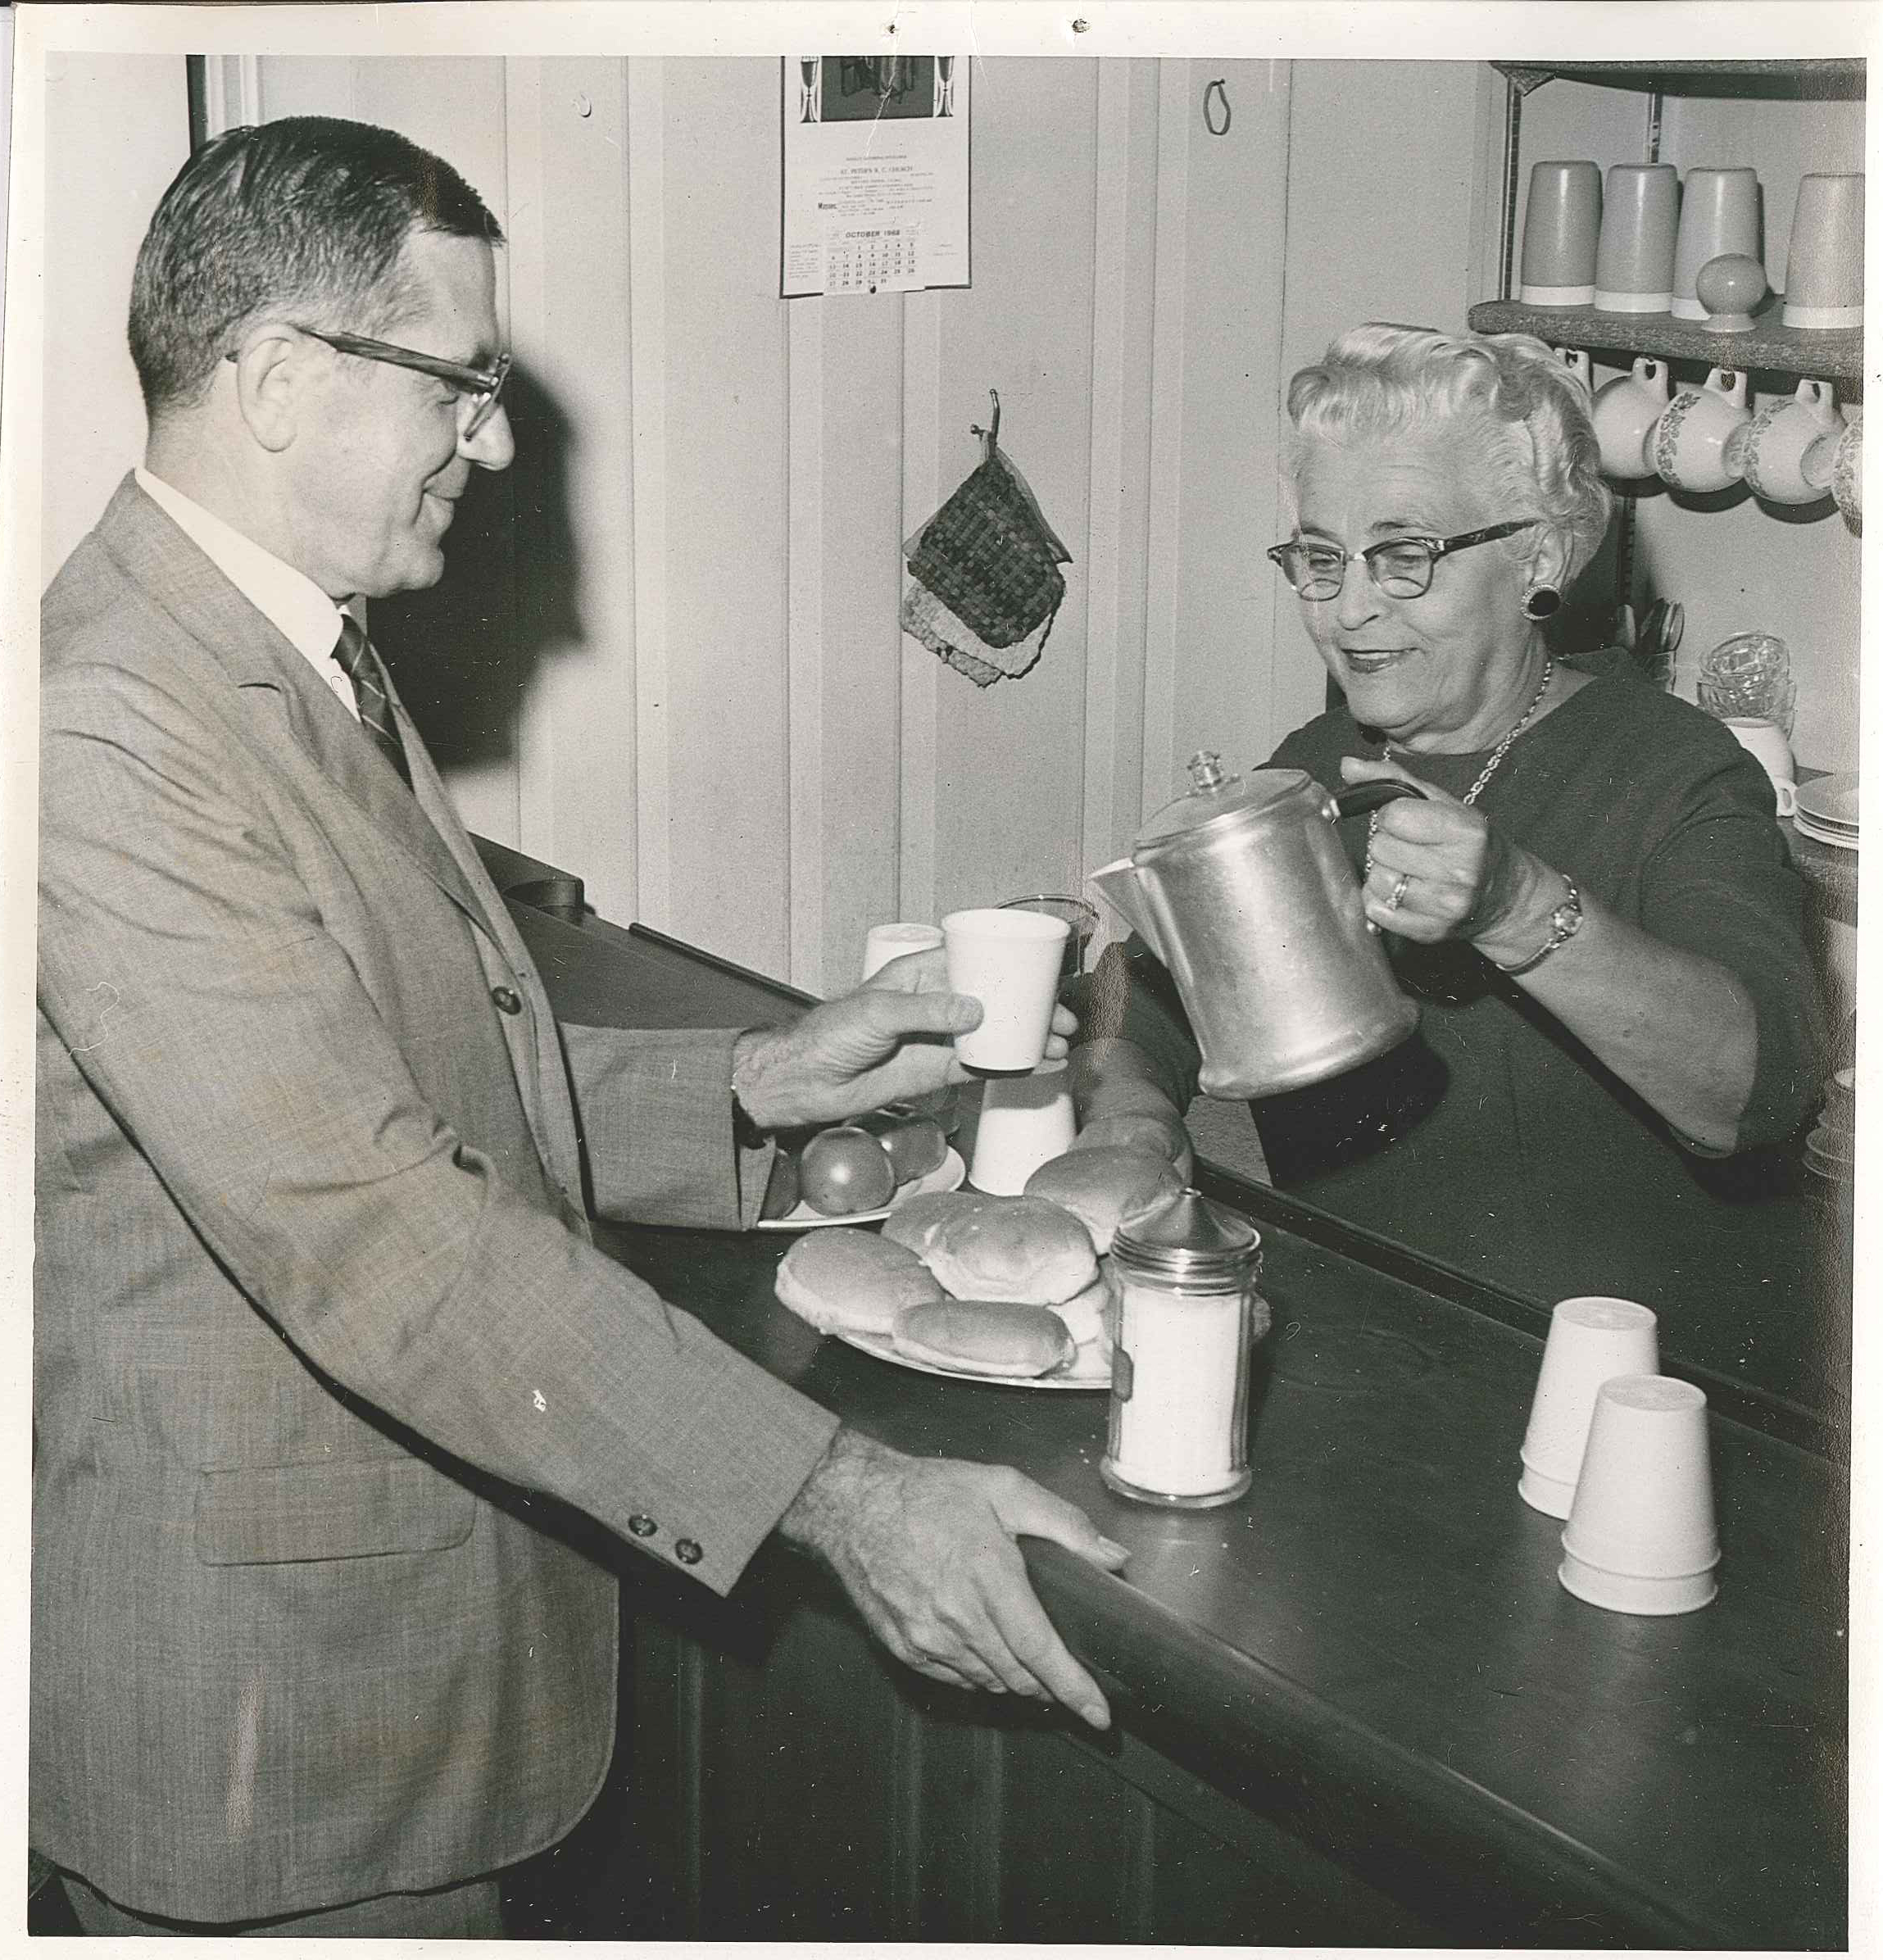 1968: coffee service in the first headquarters of the Berks County Senior Citizens Council, in the basement of the Berkshire Hotel